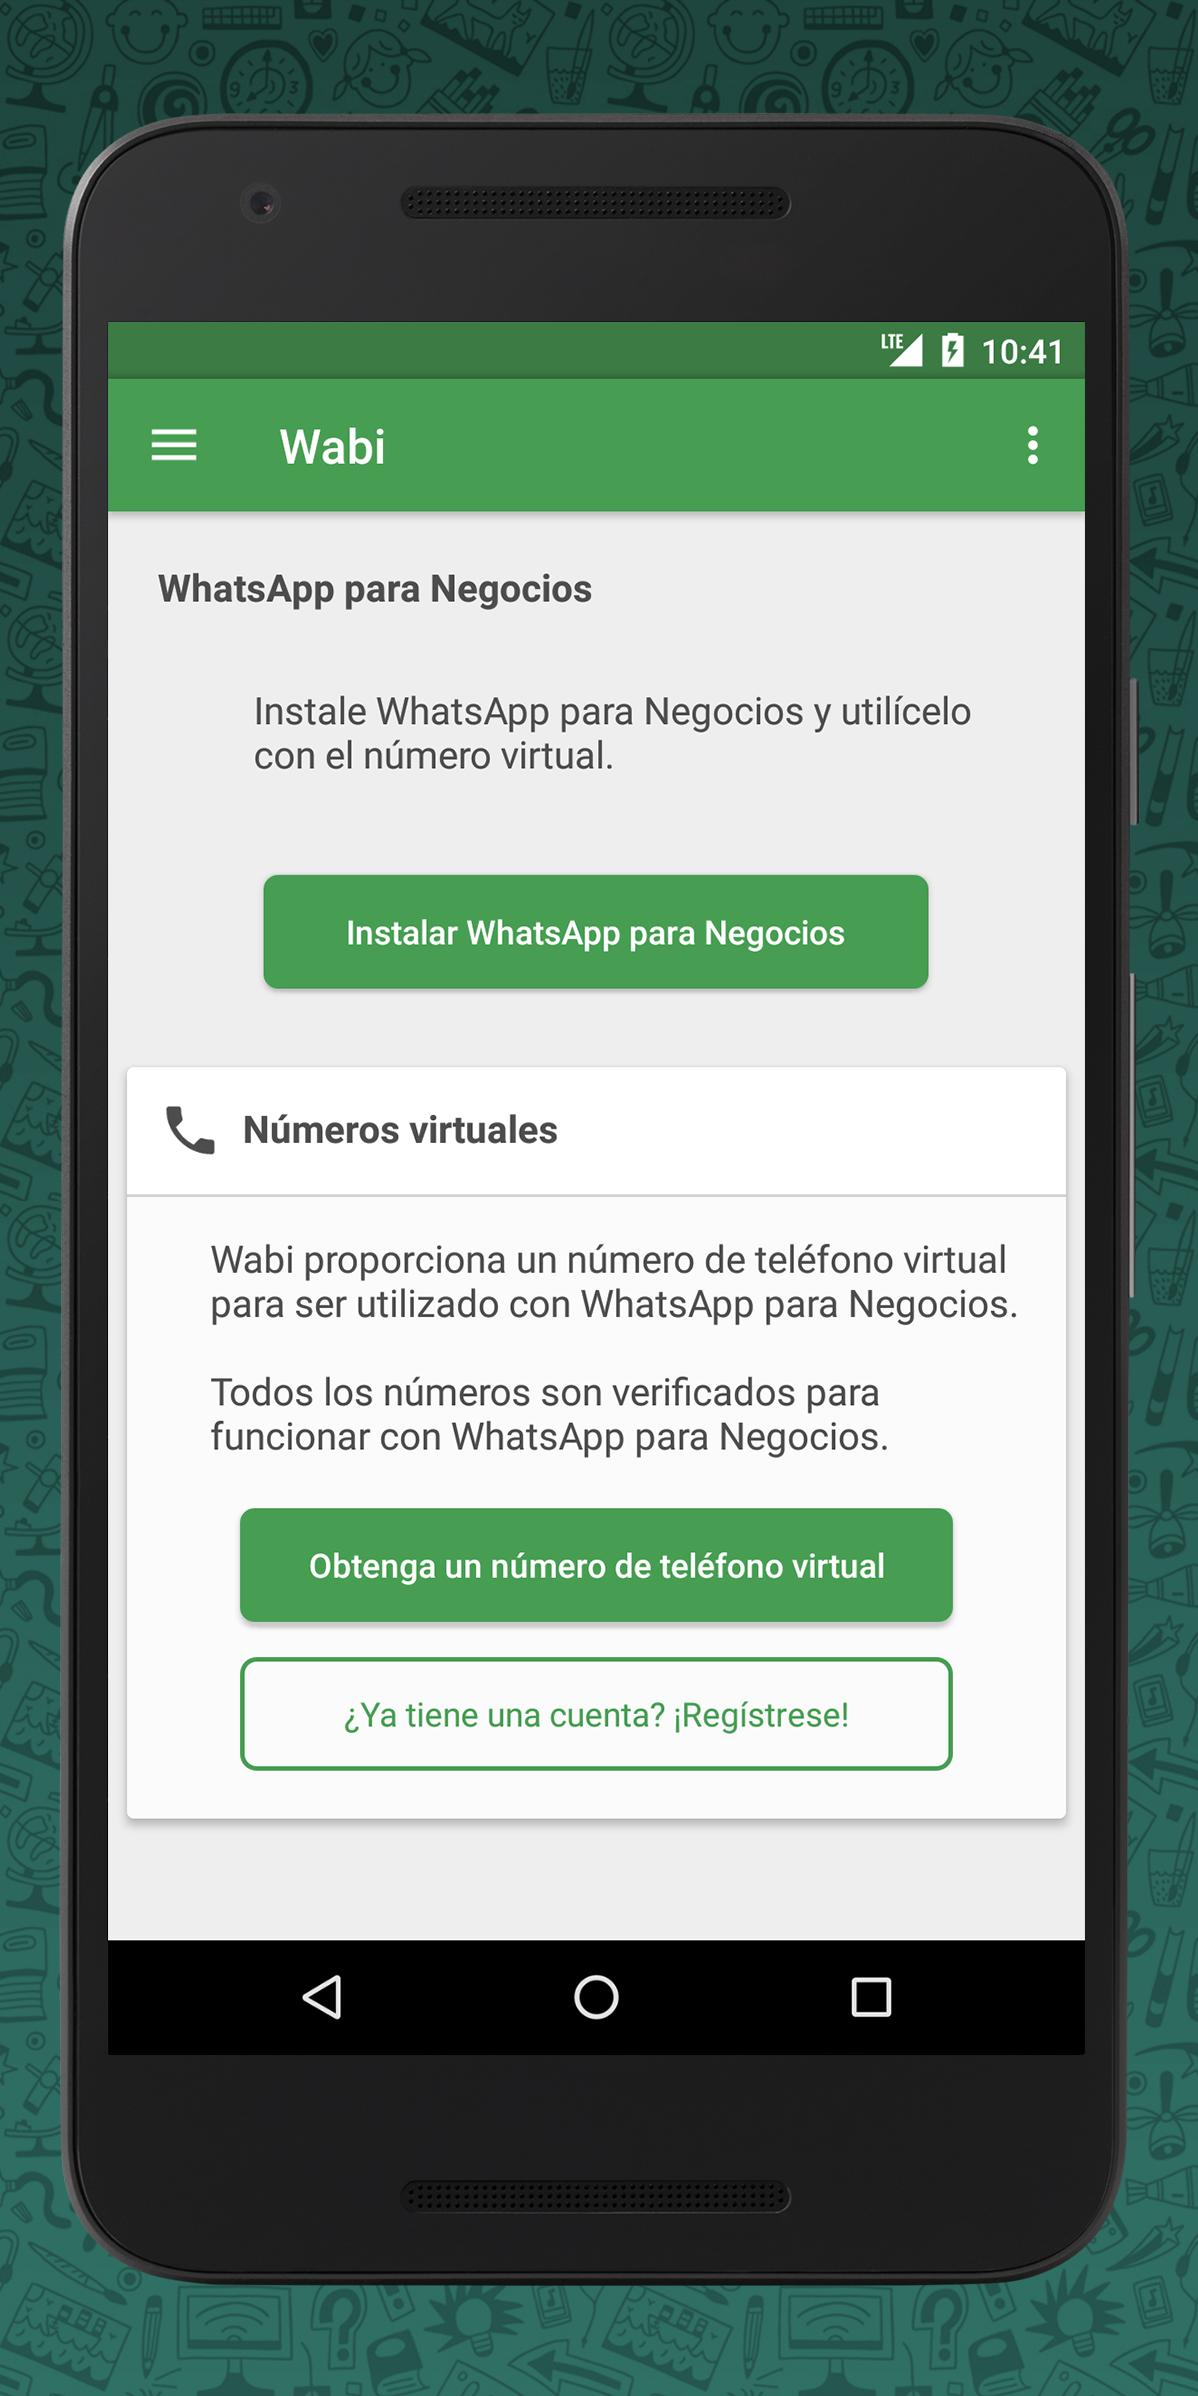 Wabi for Android - APK Download